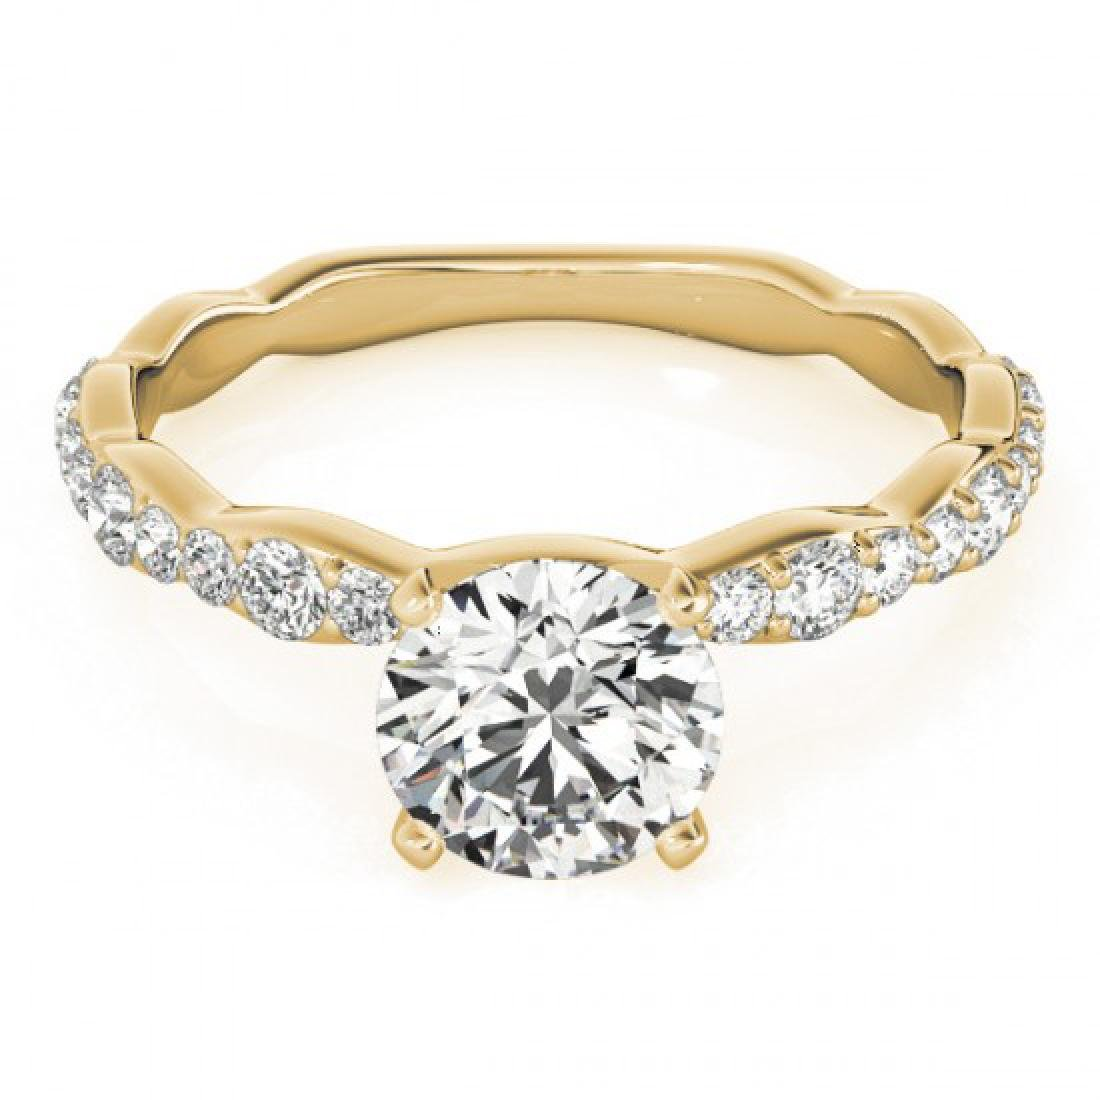 0.93 CTW Certified VS/SI Diamond Solitaire Ring 14K